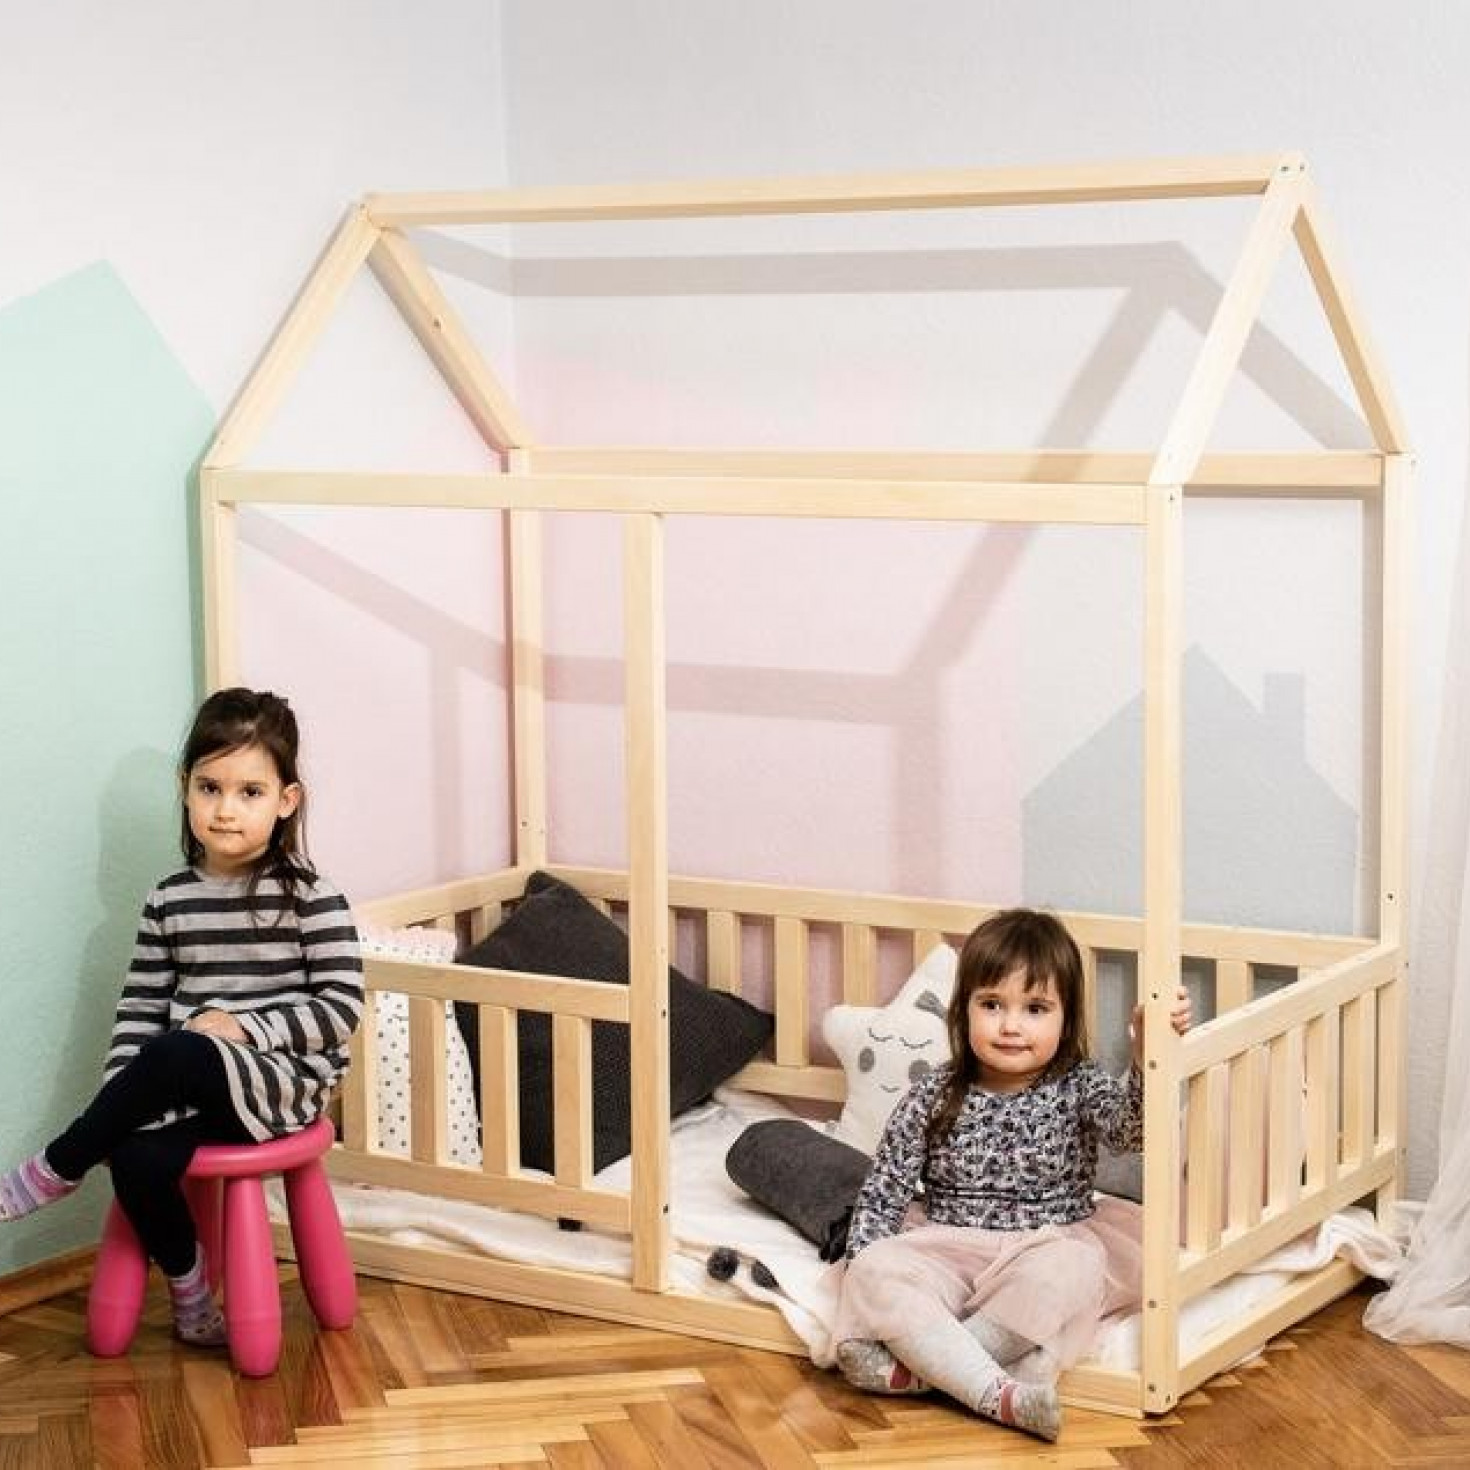 Children posing next to a toddler floor bed